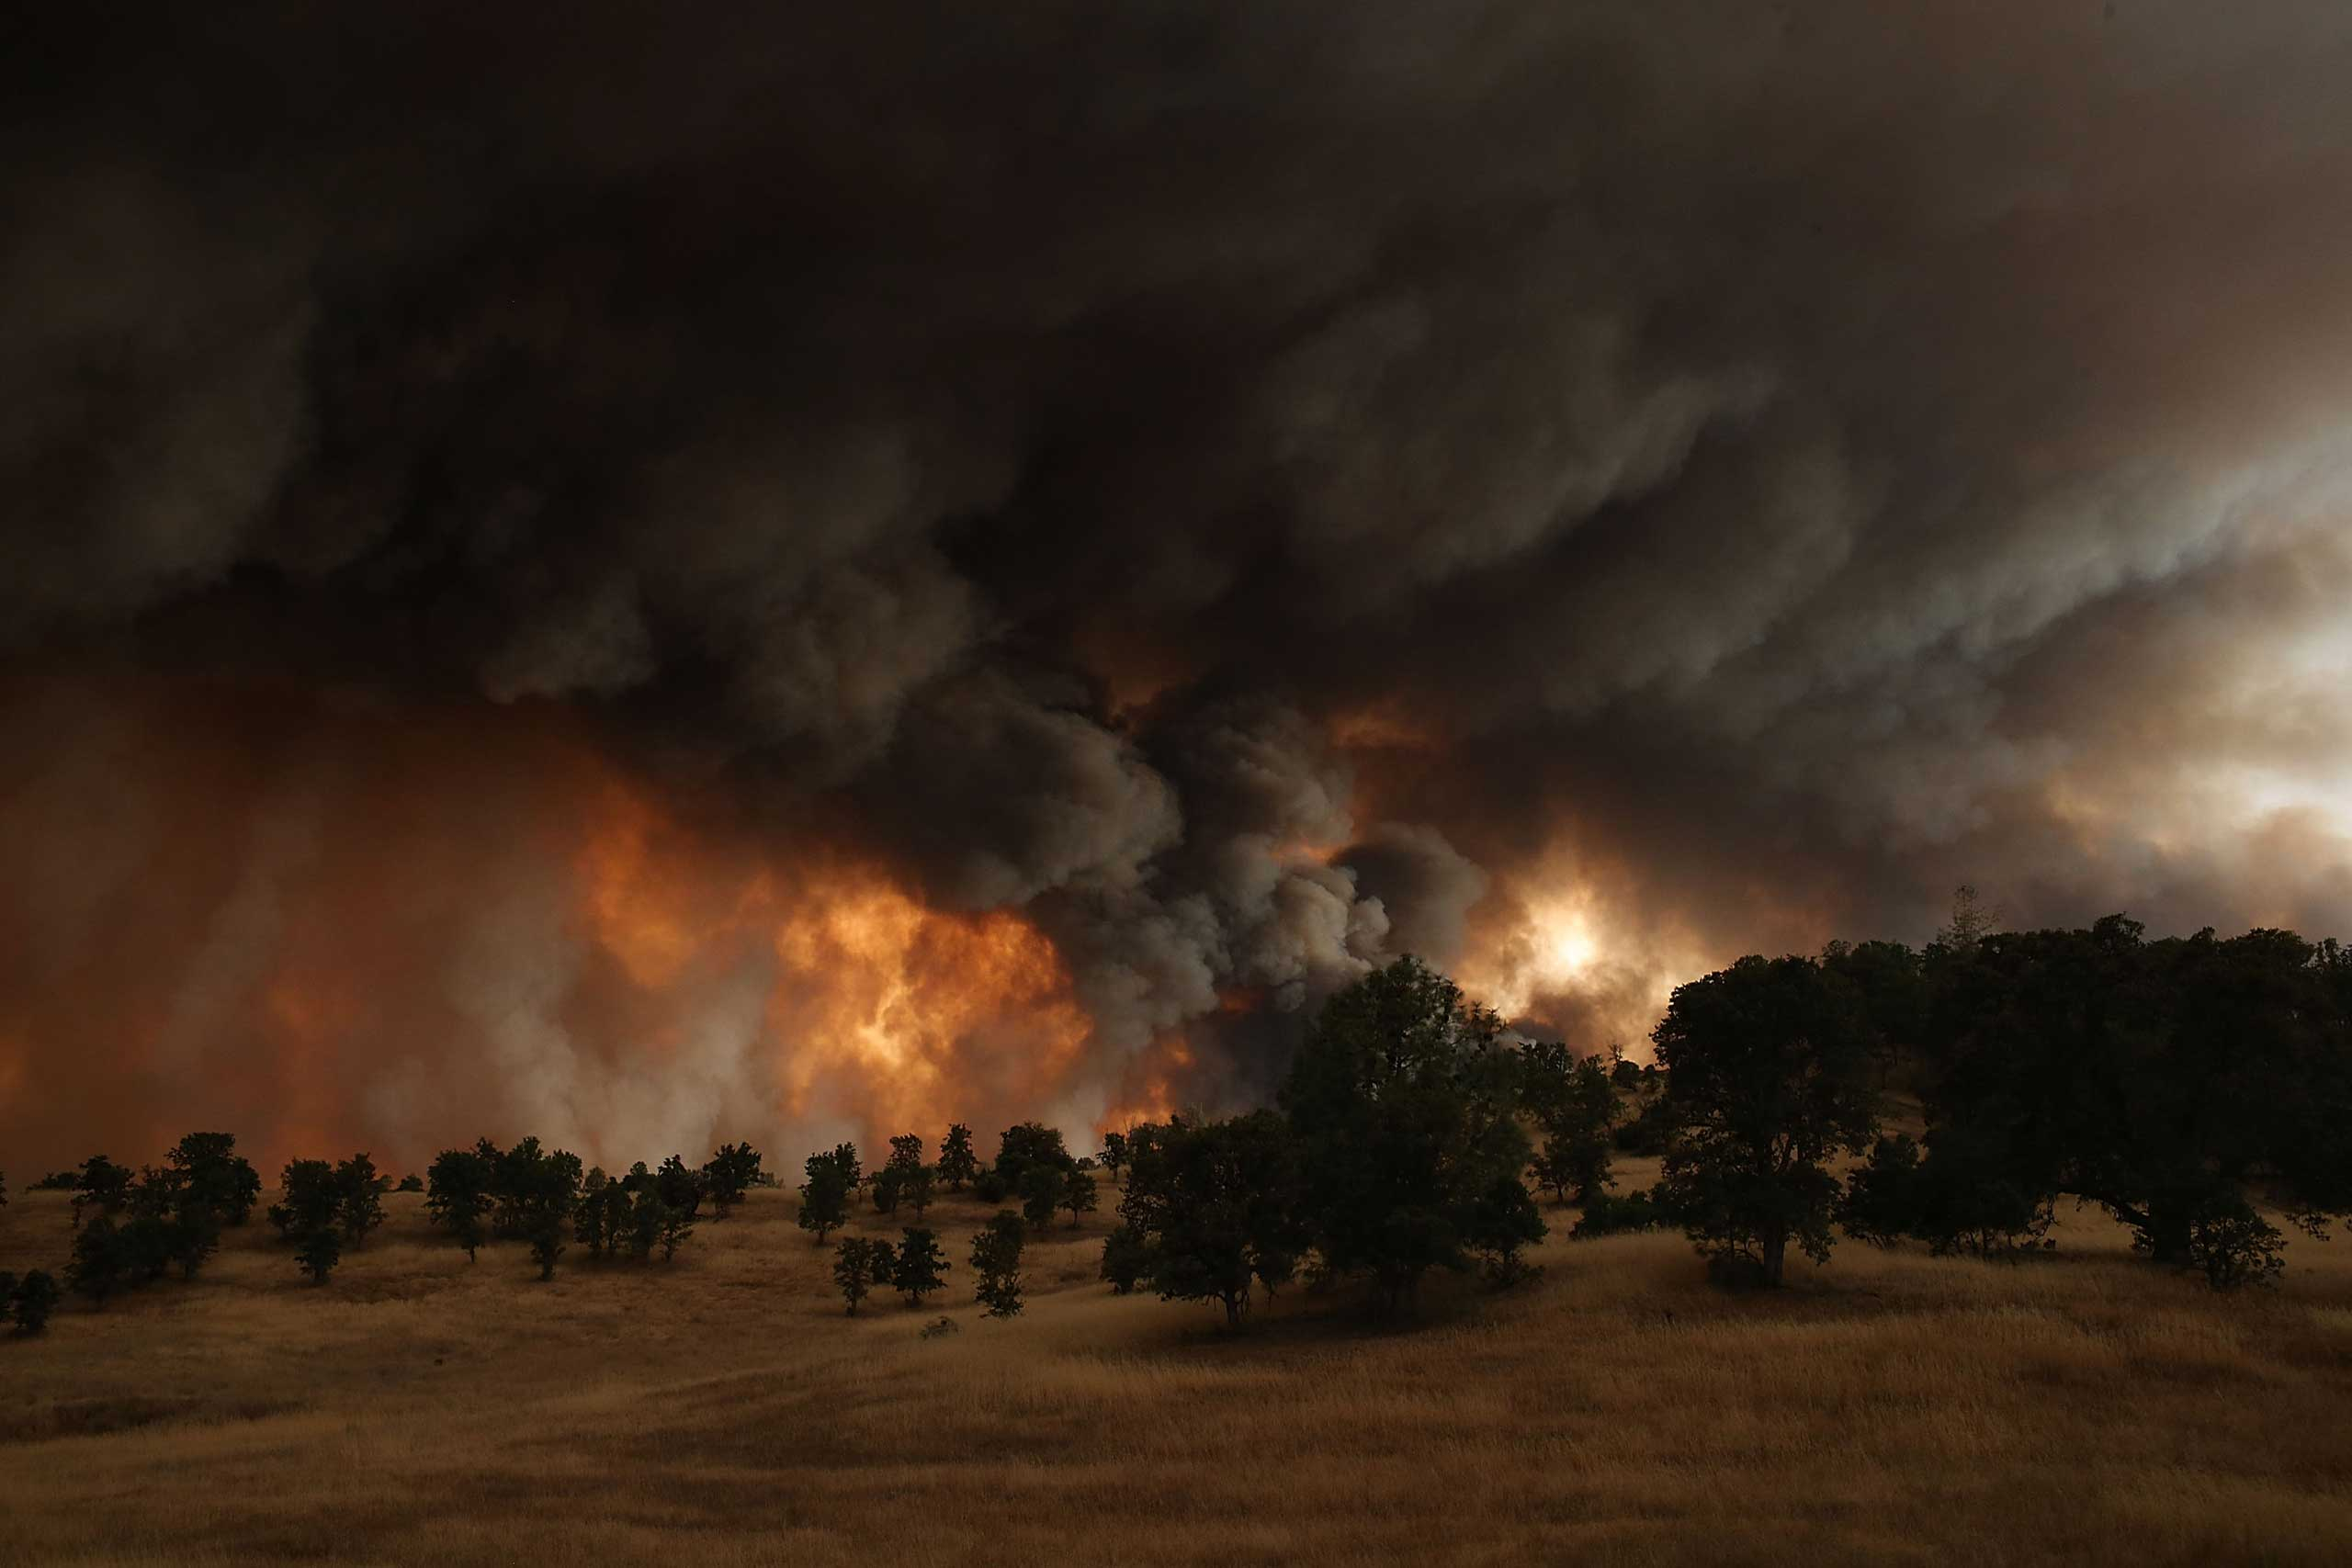 A large plume of smoke rises from the Rocky Fire near Clearlake, Calif. Over 1,900 firefighters are battling the Rocky Fire that burned over 22,000 acres since it started earlier that week. The fire has destroyed at least 14 homes. Aug. 1, 2015.